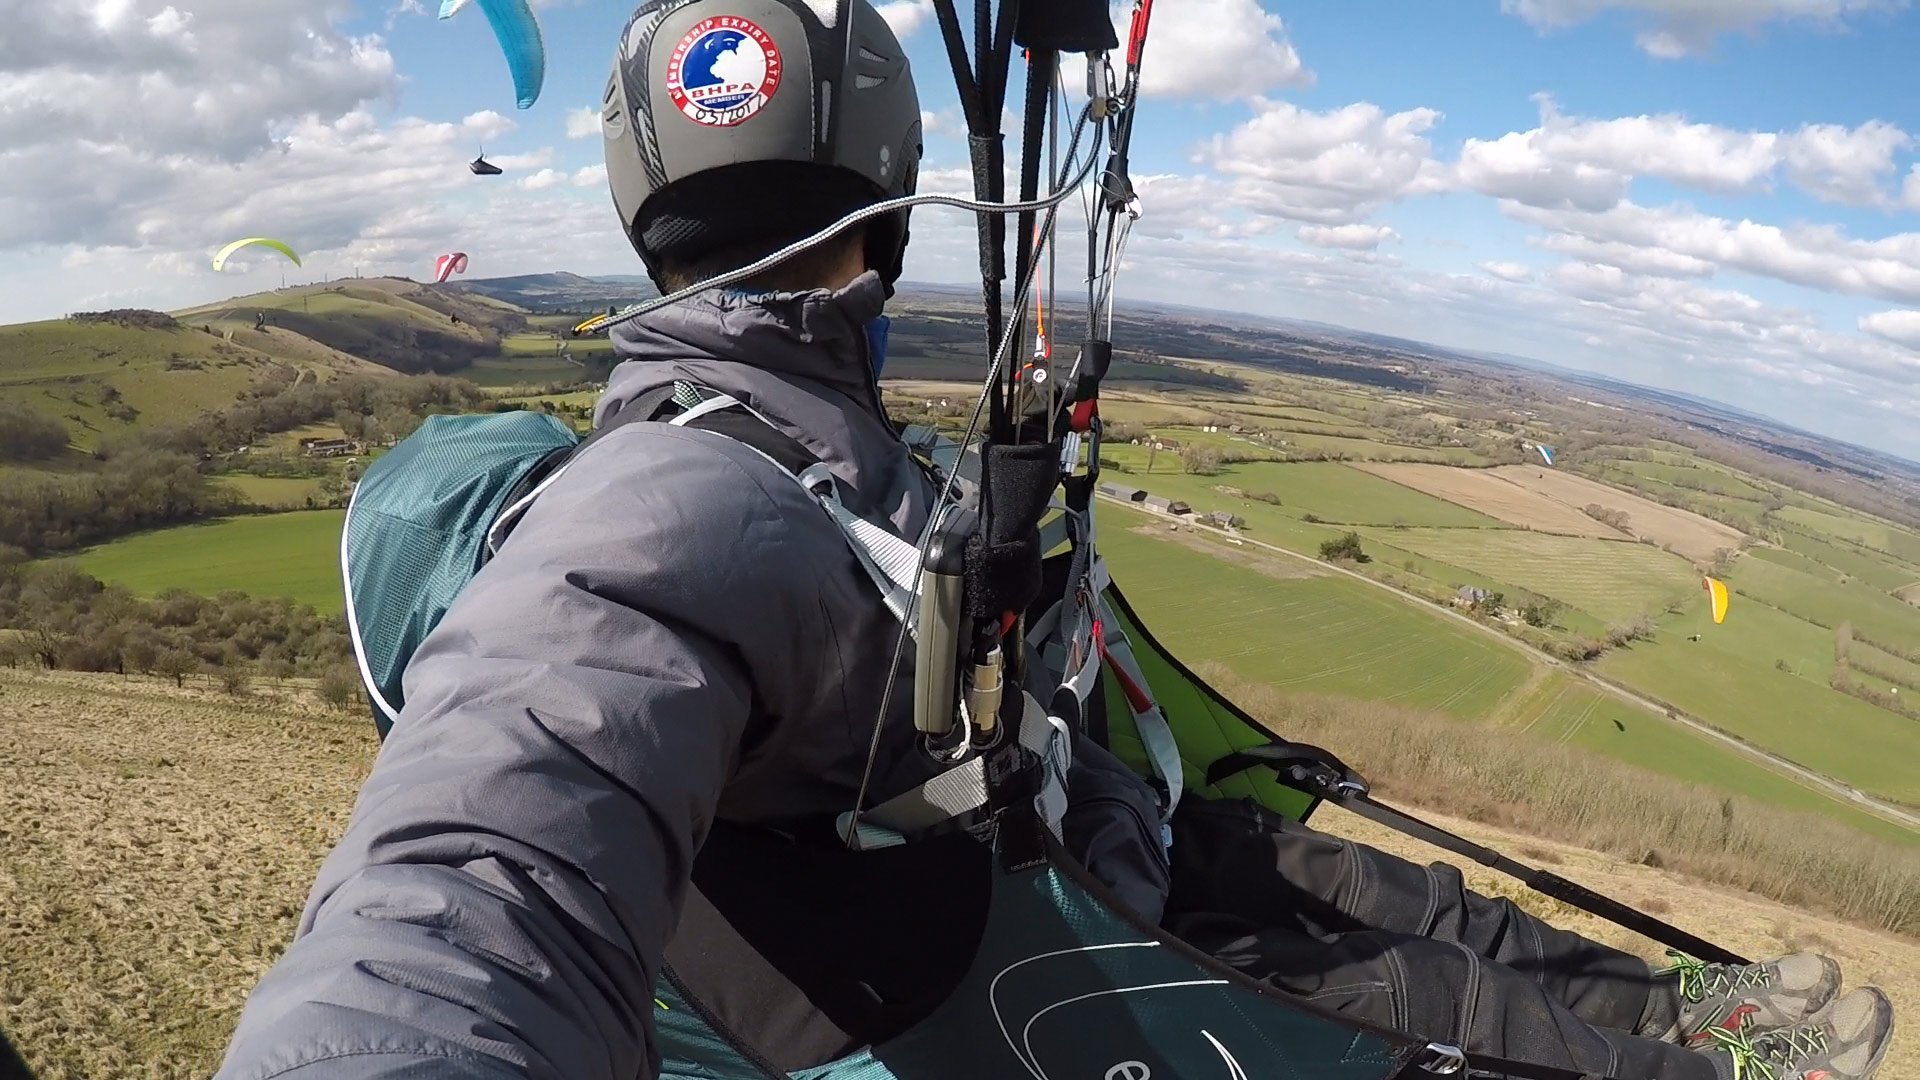 How to fly in paragliding traffic: look first